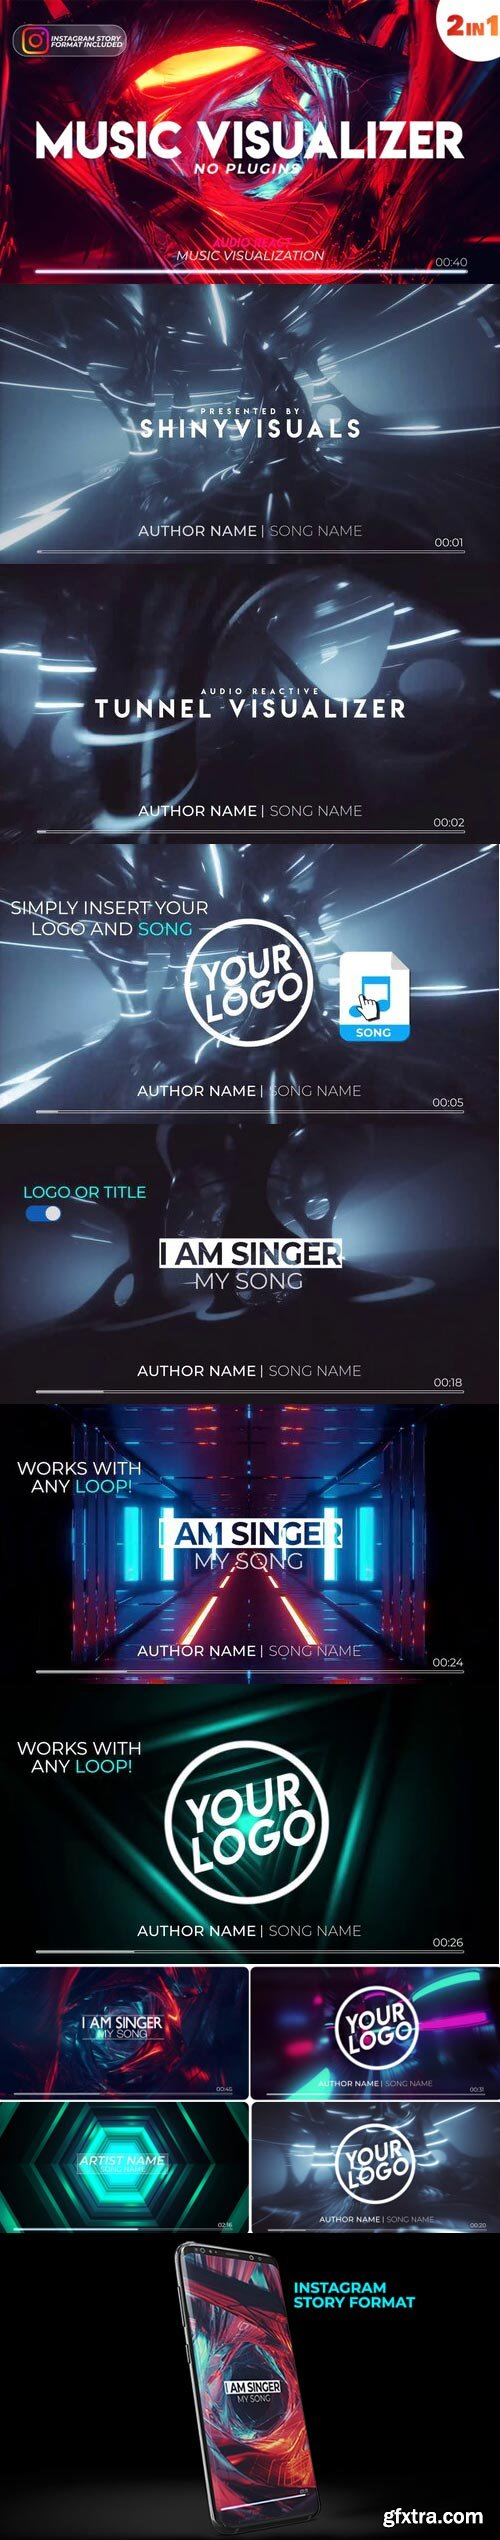 Videohive - Music Visualizer Tunnel with Audio Spectrum - 25505054